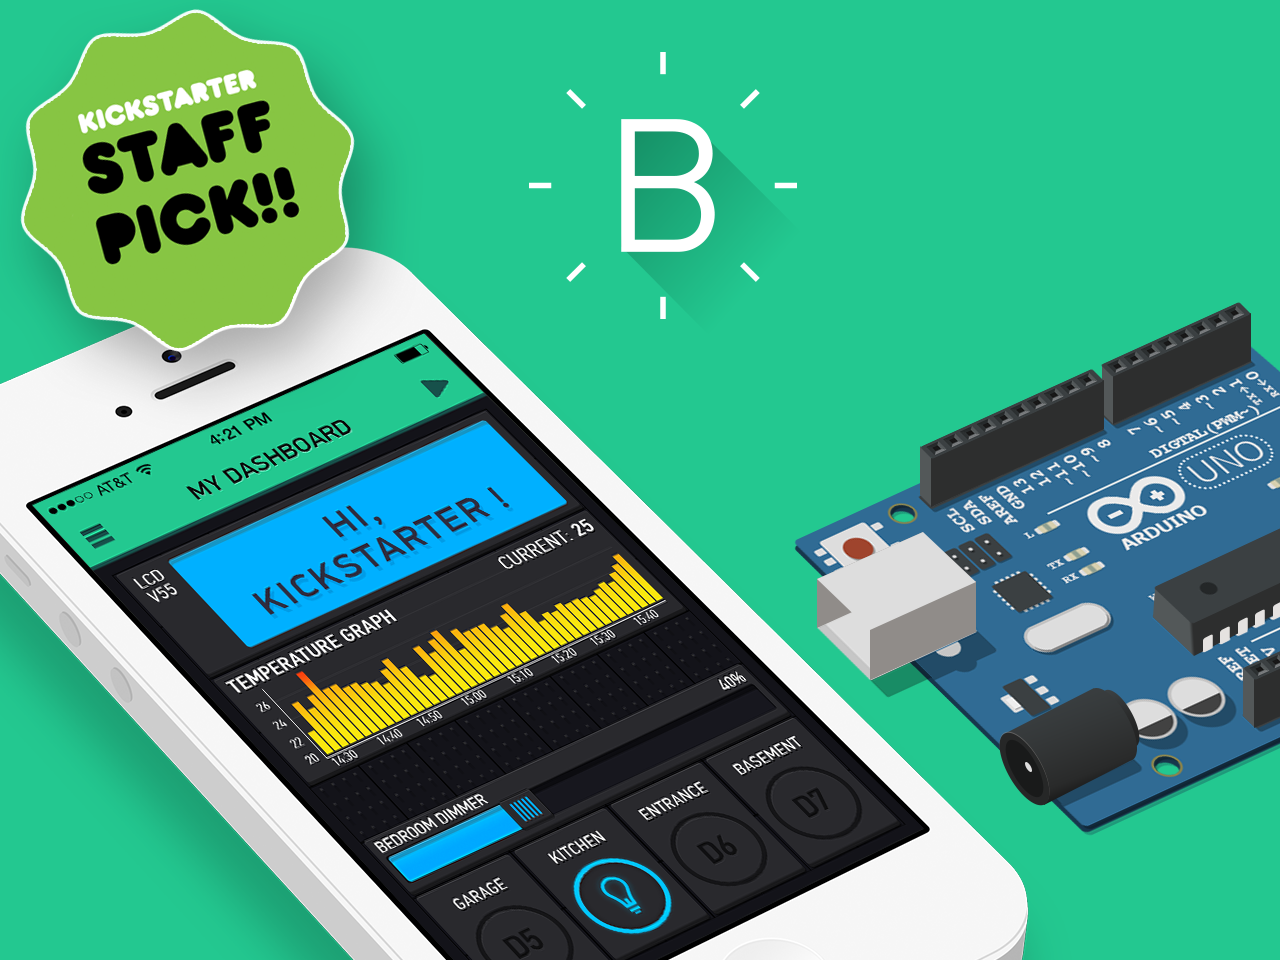 Blynk internet of things app for arduino to support